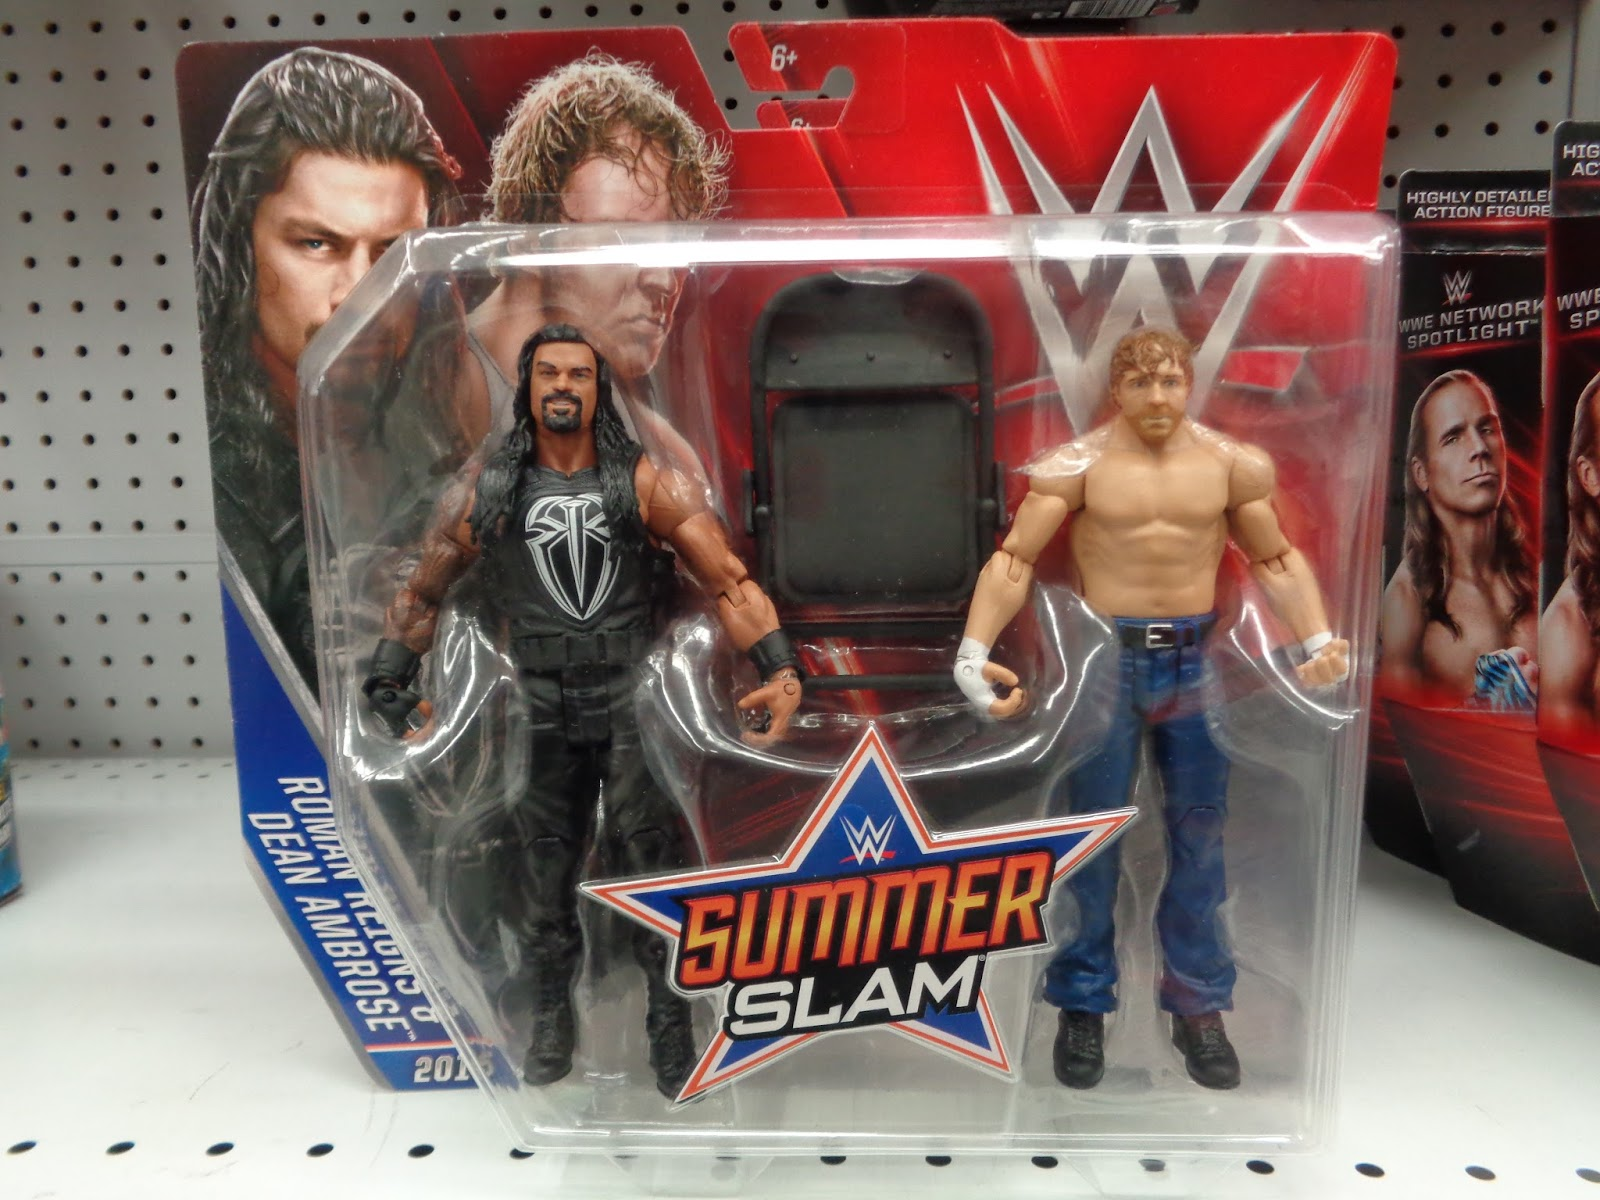 steel chair in wwe hanging quatropi j and toys summer slam heritage figures at r us